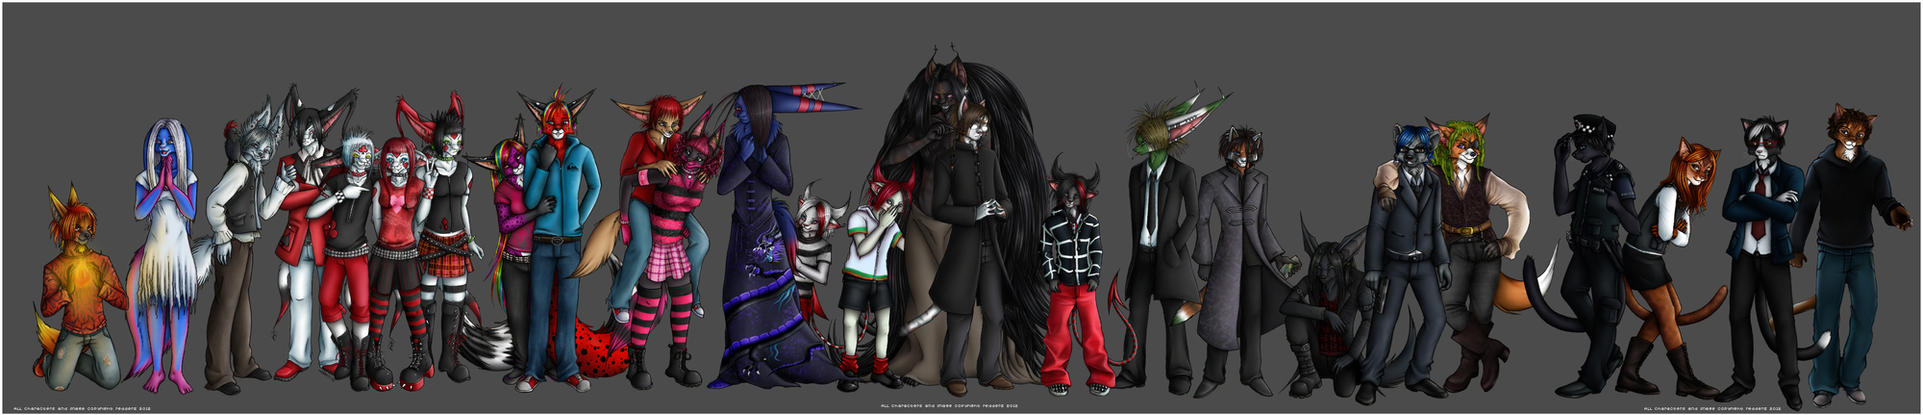 The Entire Gang by redderz